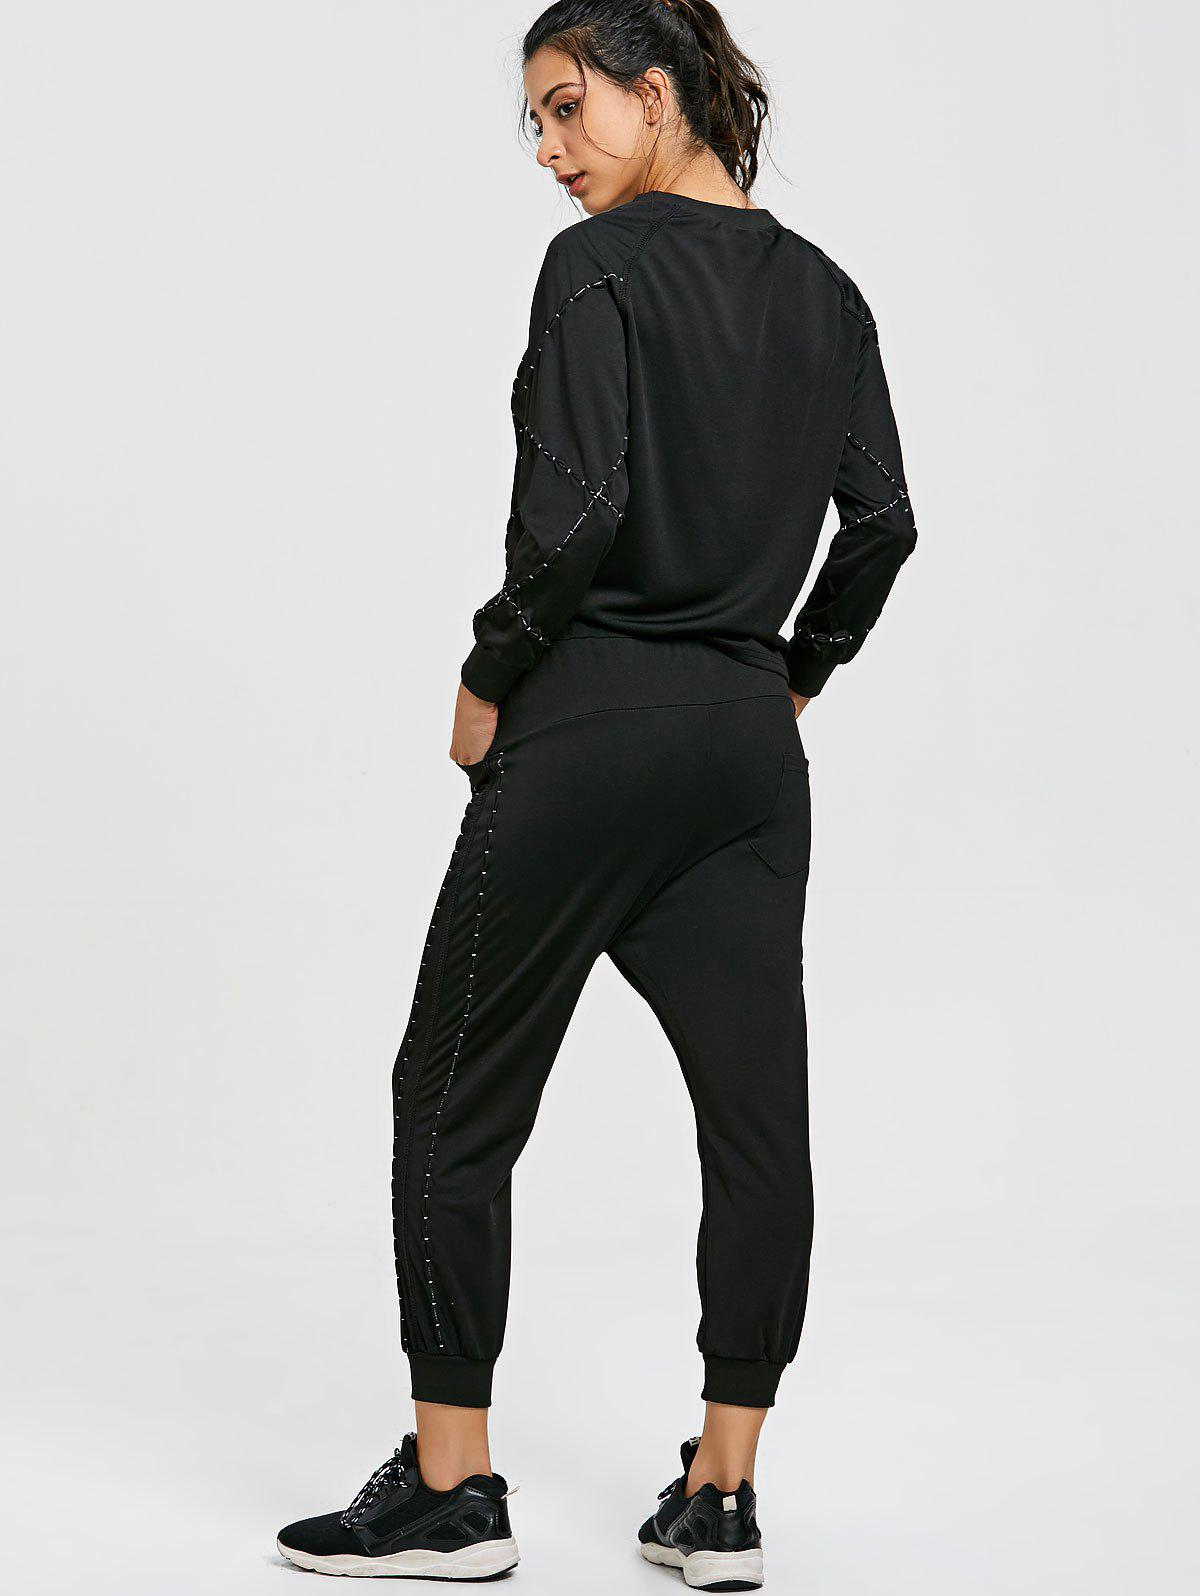 Raglan Sleeve Sweatshirt with Drawstring Jogger Pants Suit - BLACK L